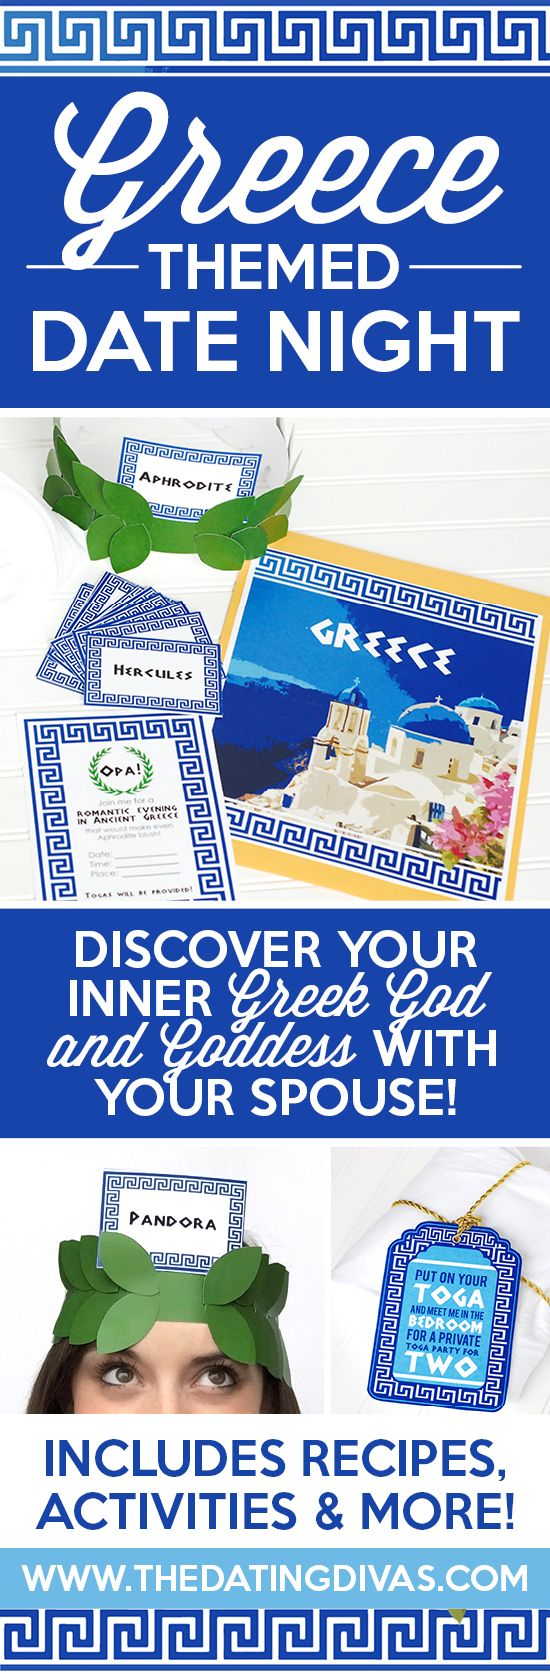 Fun printables for a Greek themed date night including invitation  recipe  cards  activities 365 best Dating Divas Romance Tips images on Pinterest. Romantic Bedroom Games Free Online. Home Design Ideas